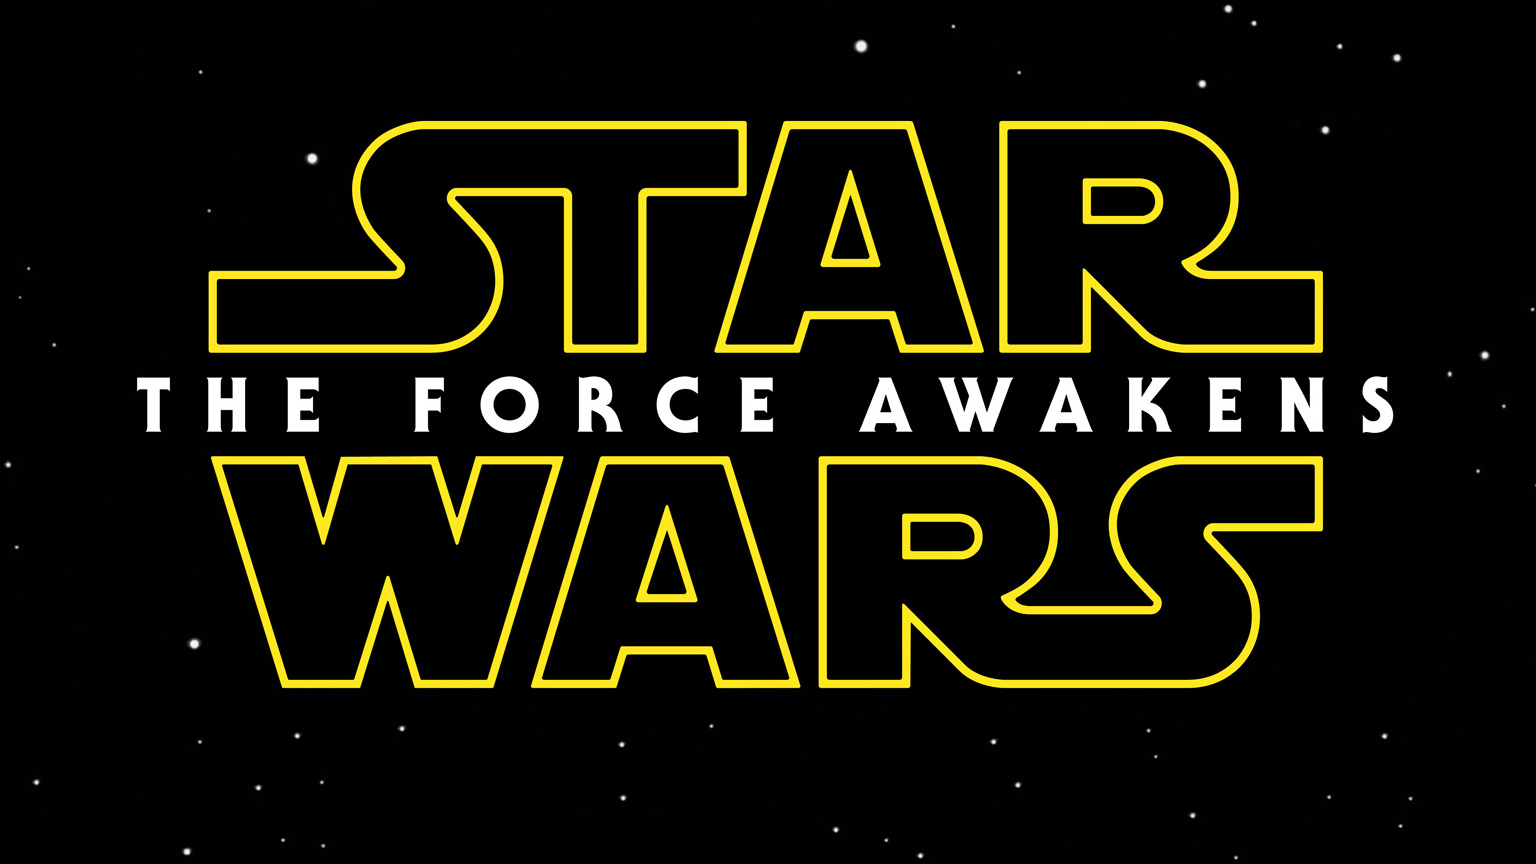 SWTFA-Logo-11-05-14-Revised-1536x864-801786847179